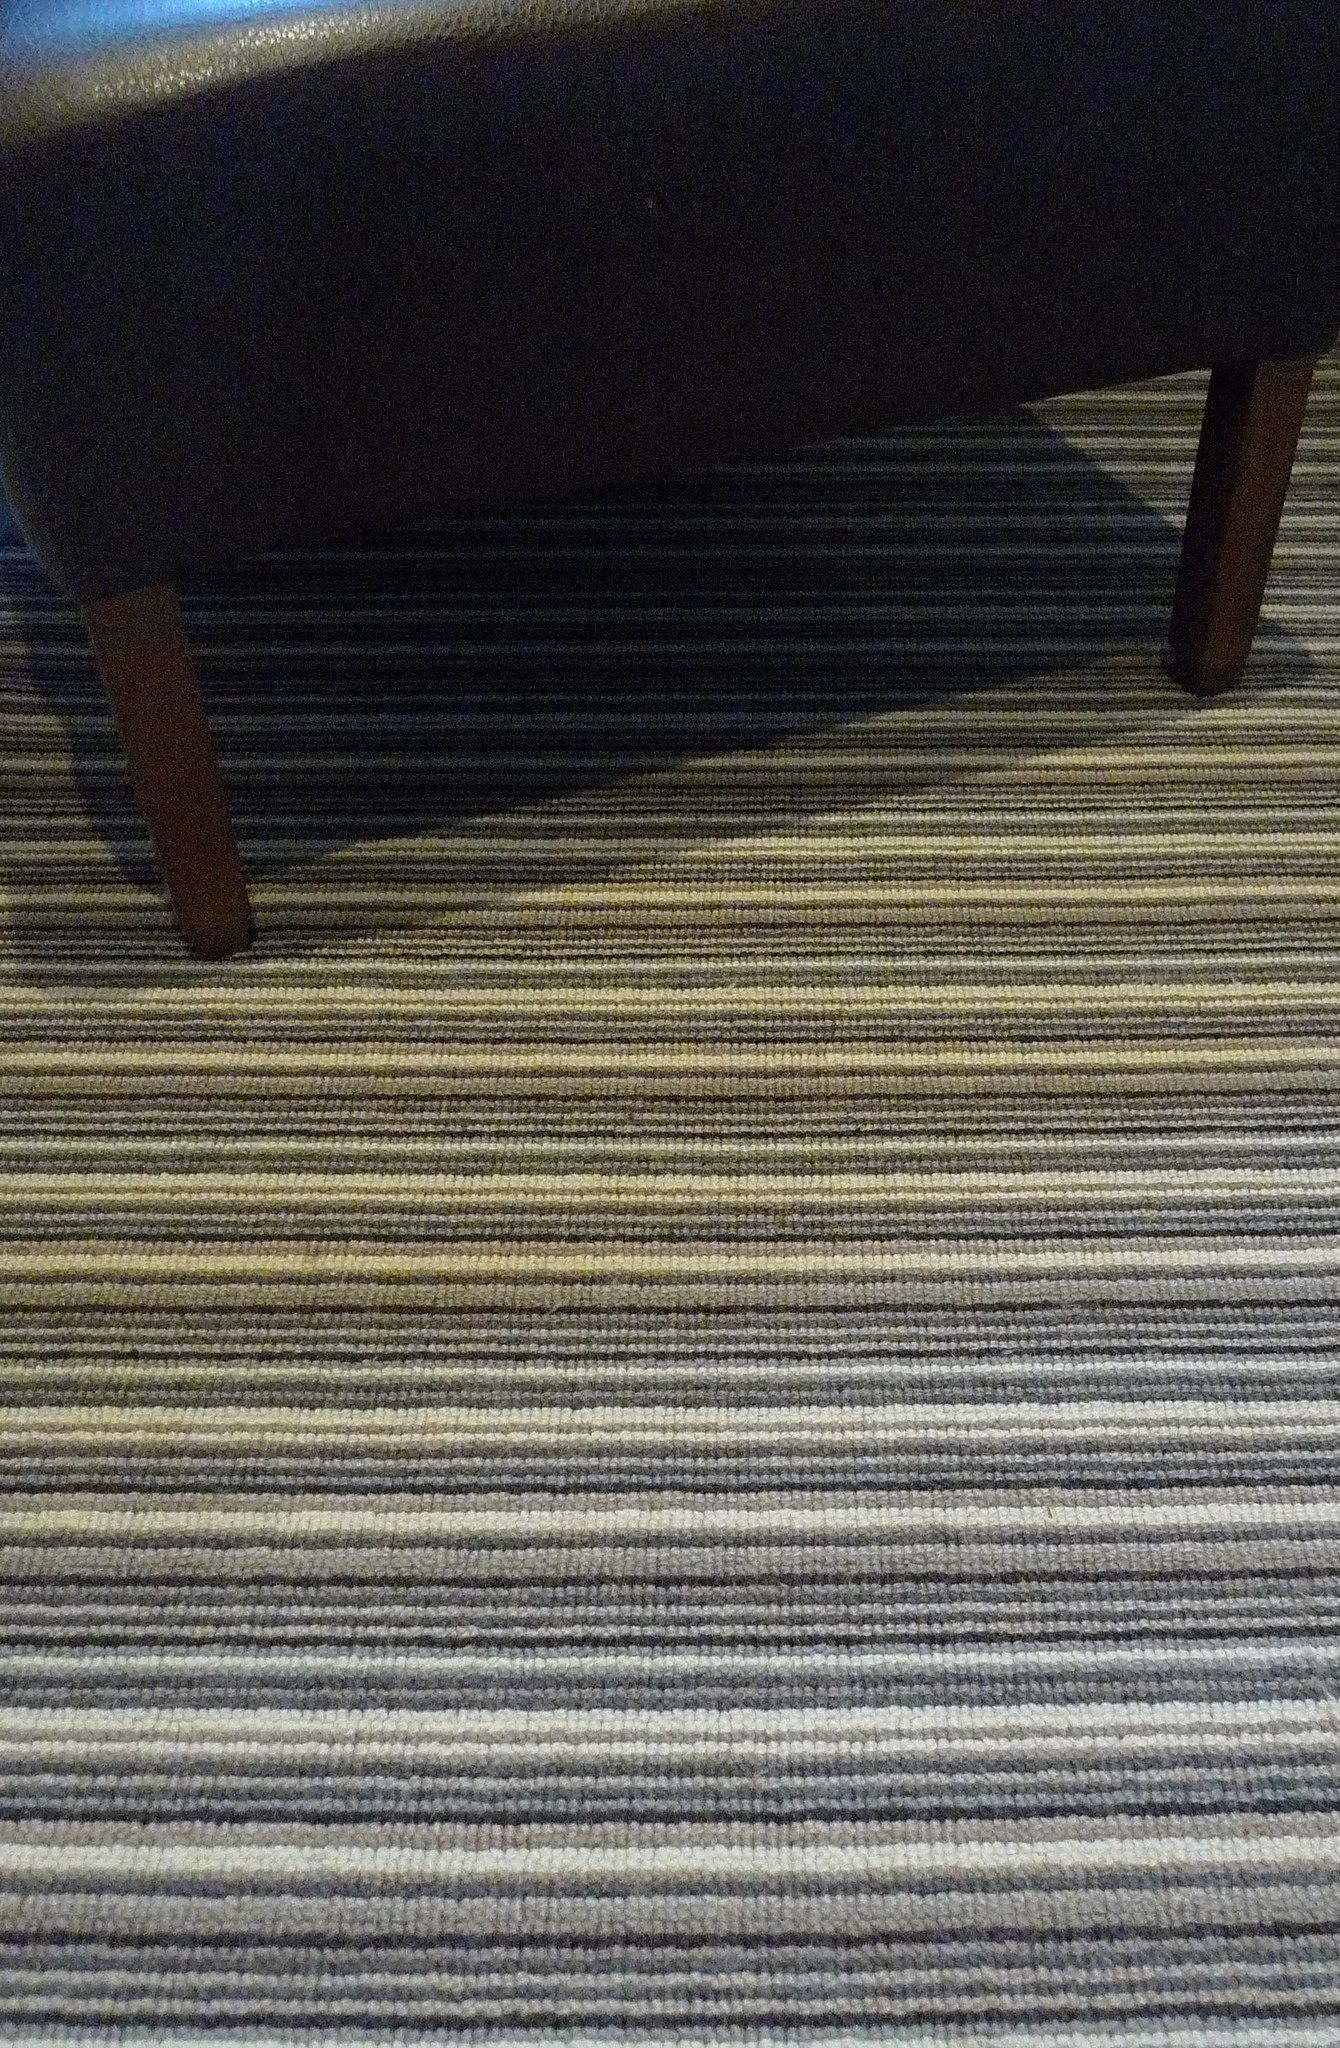 Pin By Gaskell Mackay On Carpet Images Archive